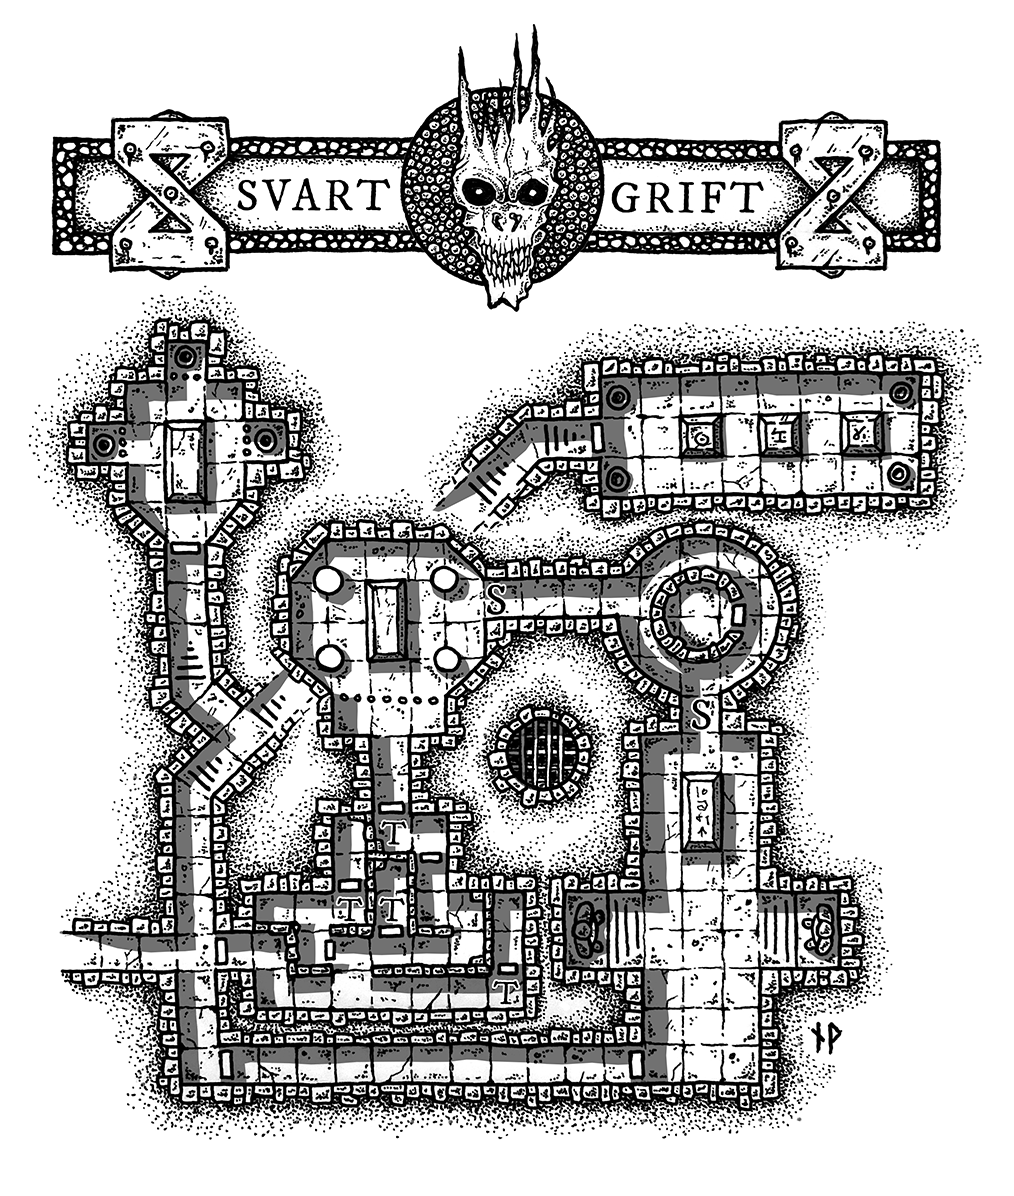 SVART GRIFT - ancient tomb dungeon map - Paths Peculiar on mining maps, battle maps, two worlds ii maps, dnd maps, keep maps, gaming maps, sword maps, star trek maps, the rise of runelords maps, dungeons dragons, orontius finaeus maps, wilderness map, rpg maps, food maps, special maps, city maps, world maps, iron curtain borders maps, detente maps, pathfinder d maps, star wars role-playing maps, dragon maps, baldur's gate maps, town maps, d&d maps, classic maps,